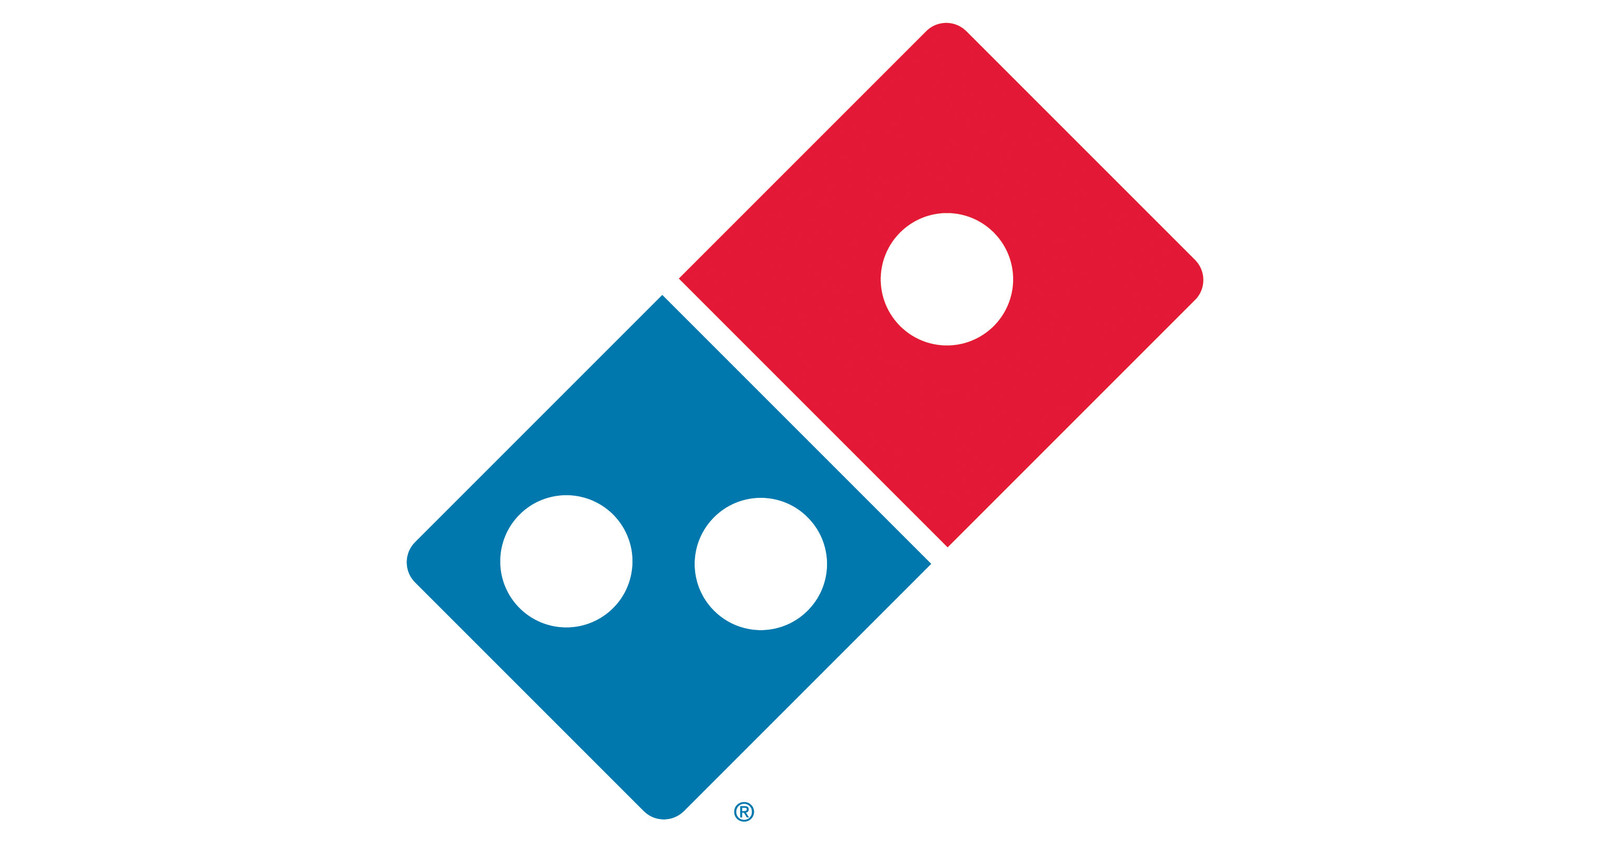 domino's pizza is one of the Use the domino's easy order button to get a pizza fast - including via facebook messenger, amazon alexa, smartphone apps and the domino's website.